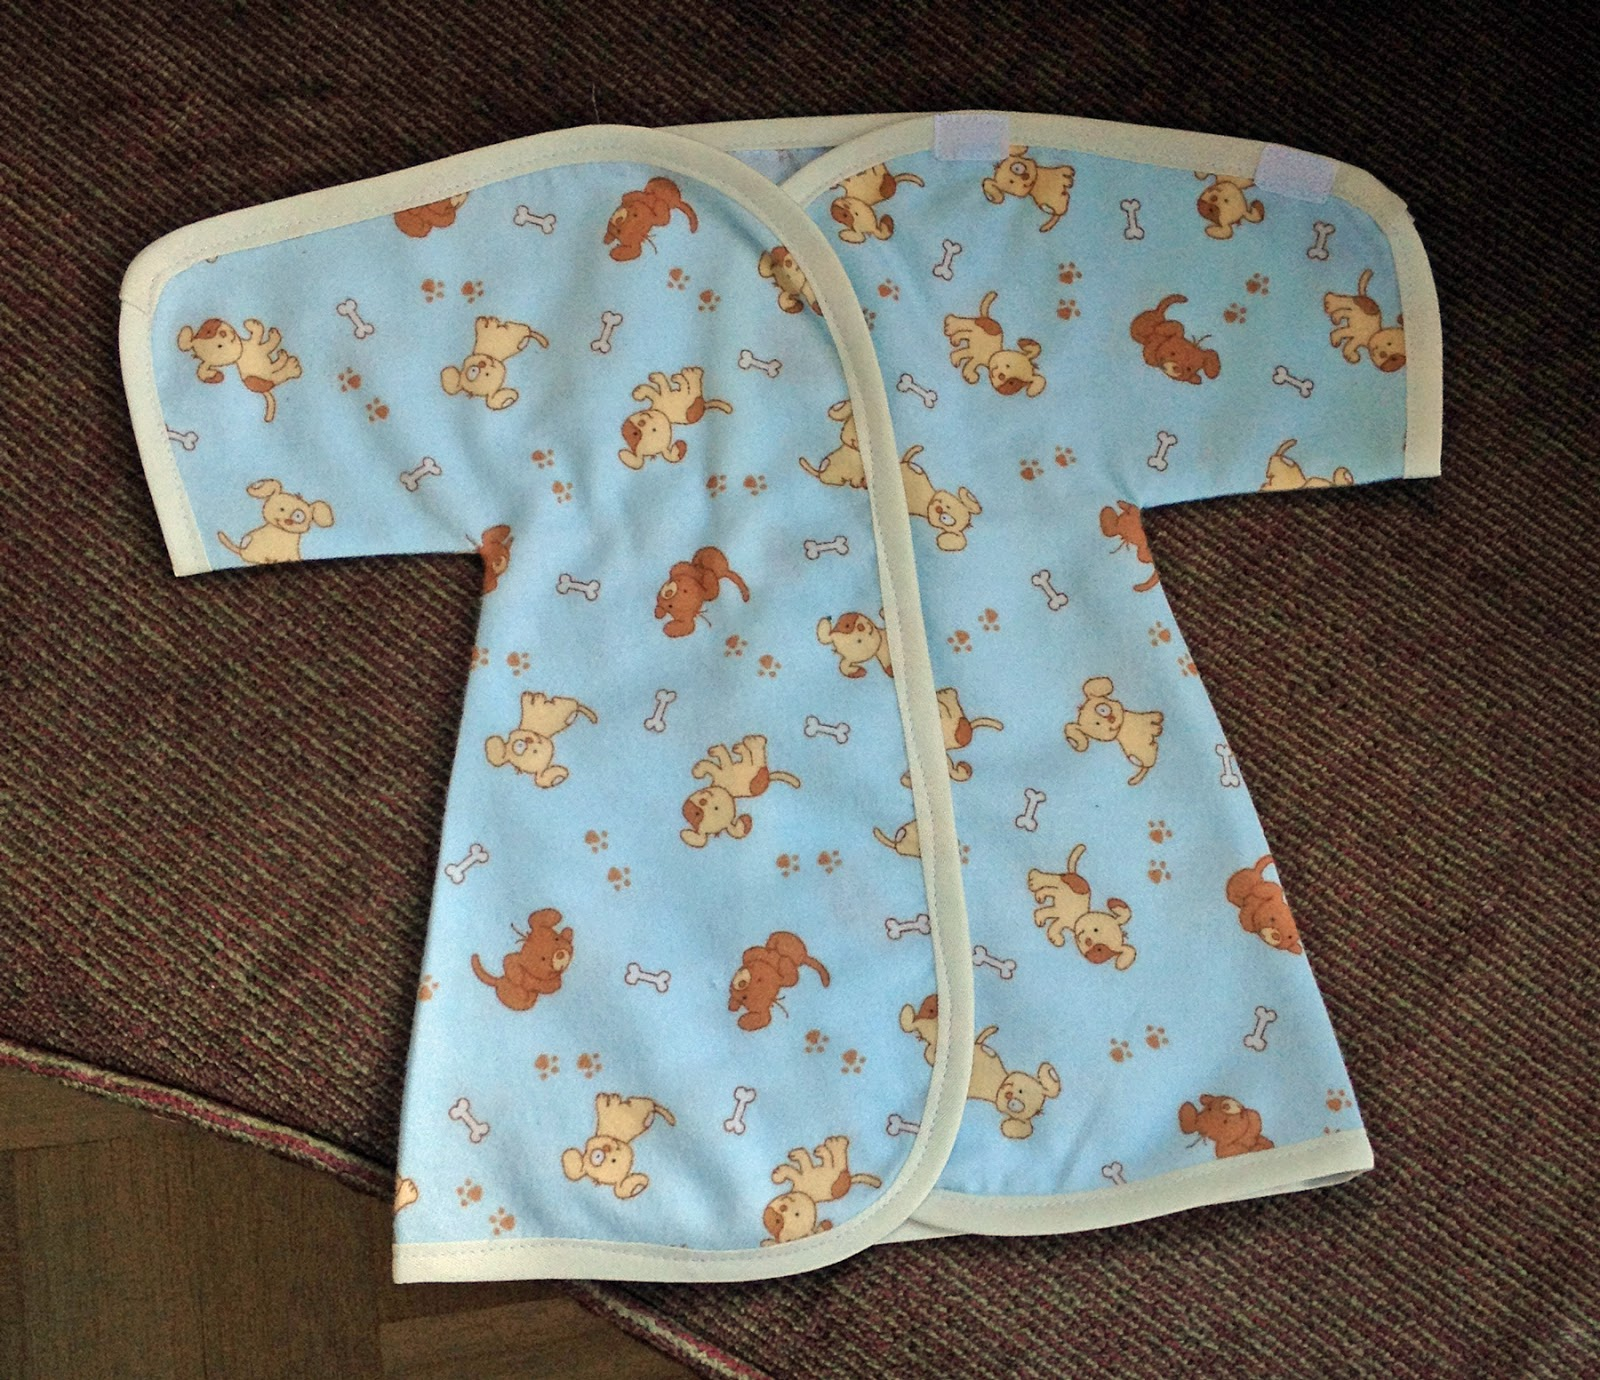 New Grandma Wants to Sew More New Baby Clothes